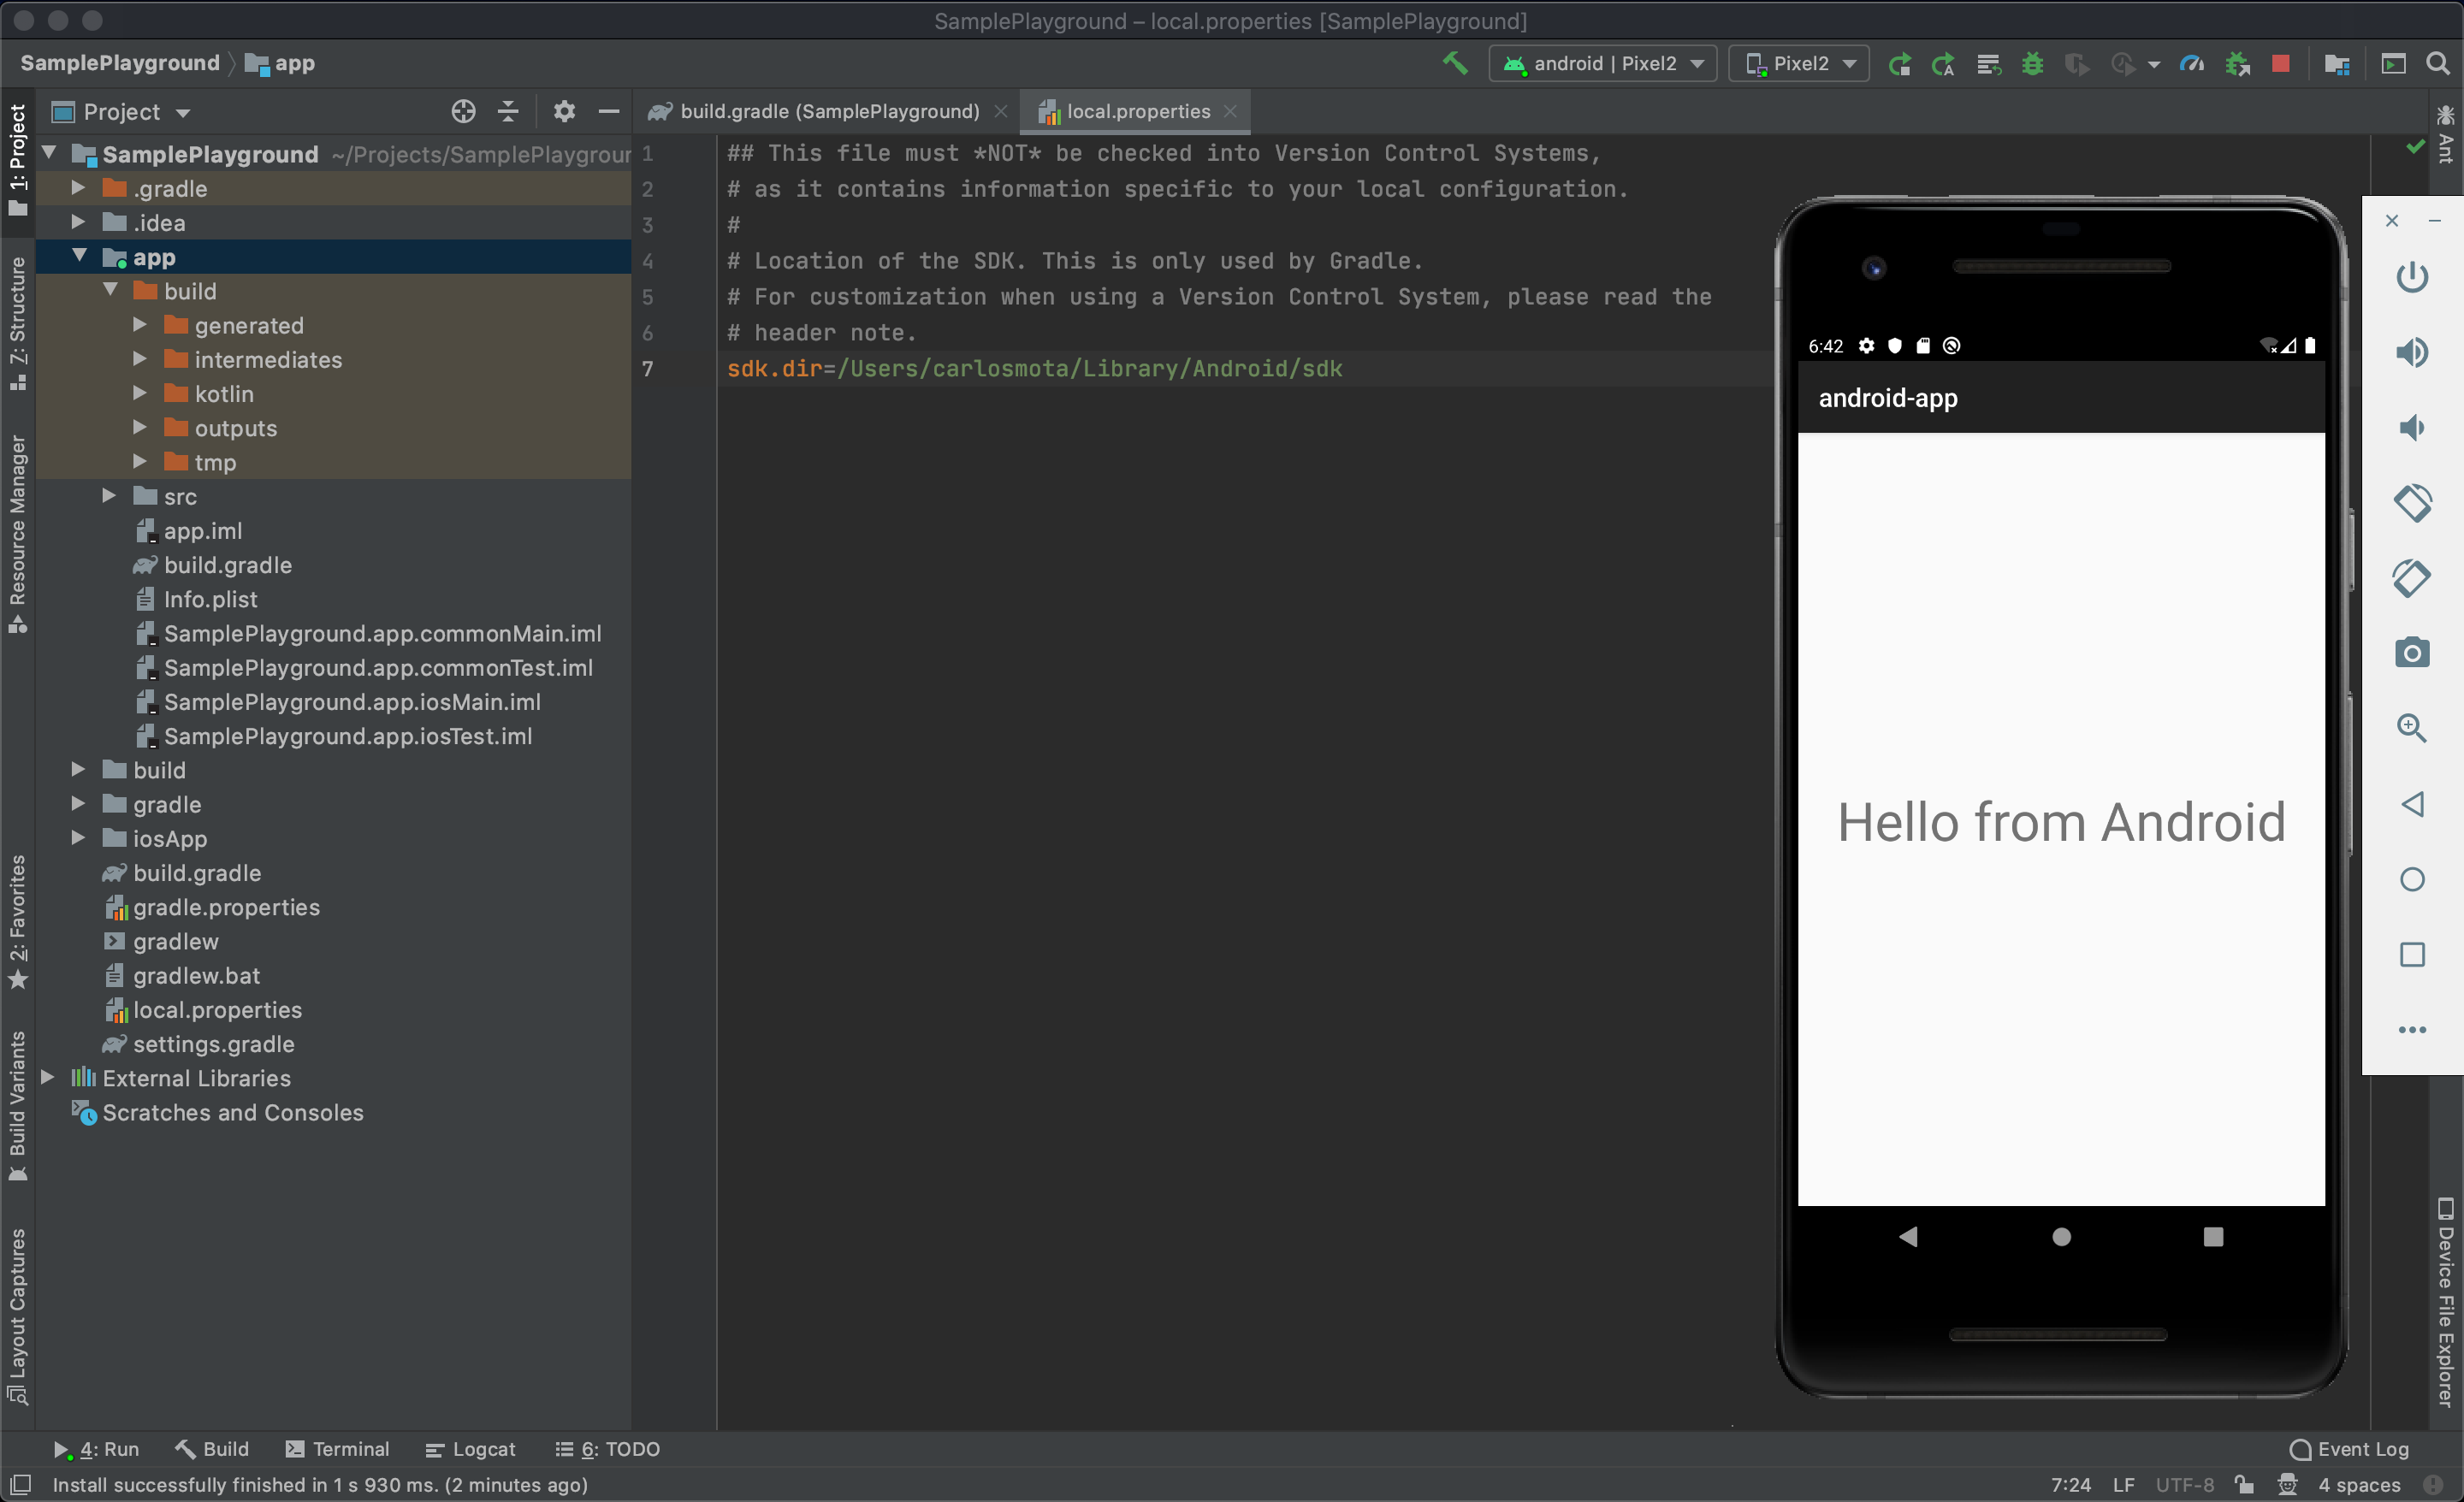 Sample app running on the Android emulator